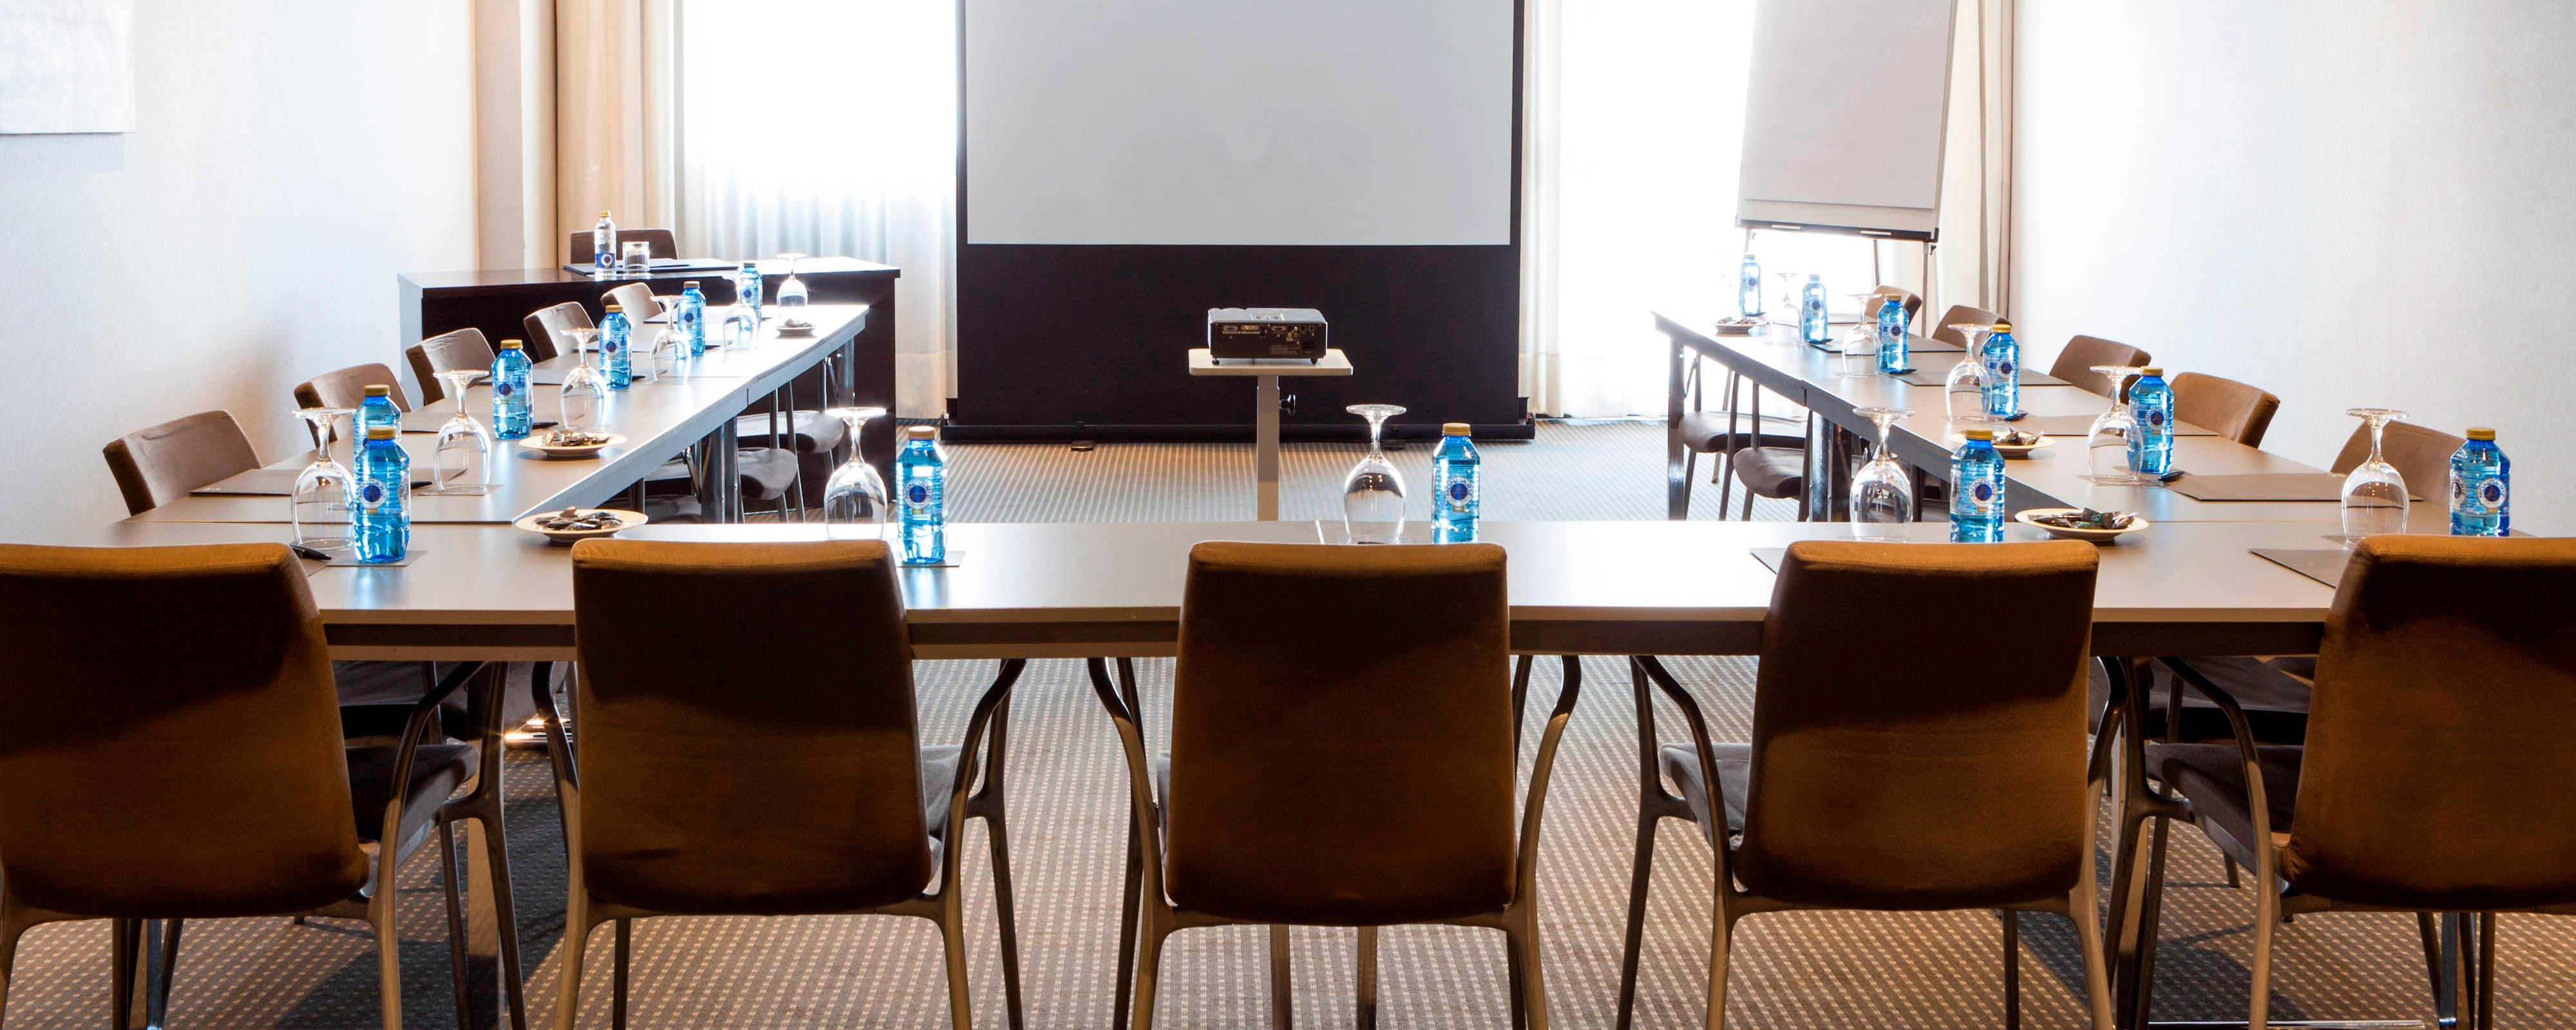 Meeting rooms in Oviedo city center